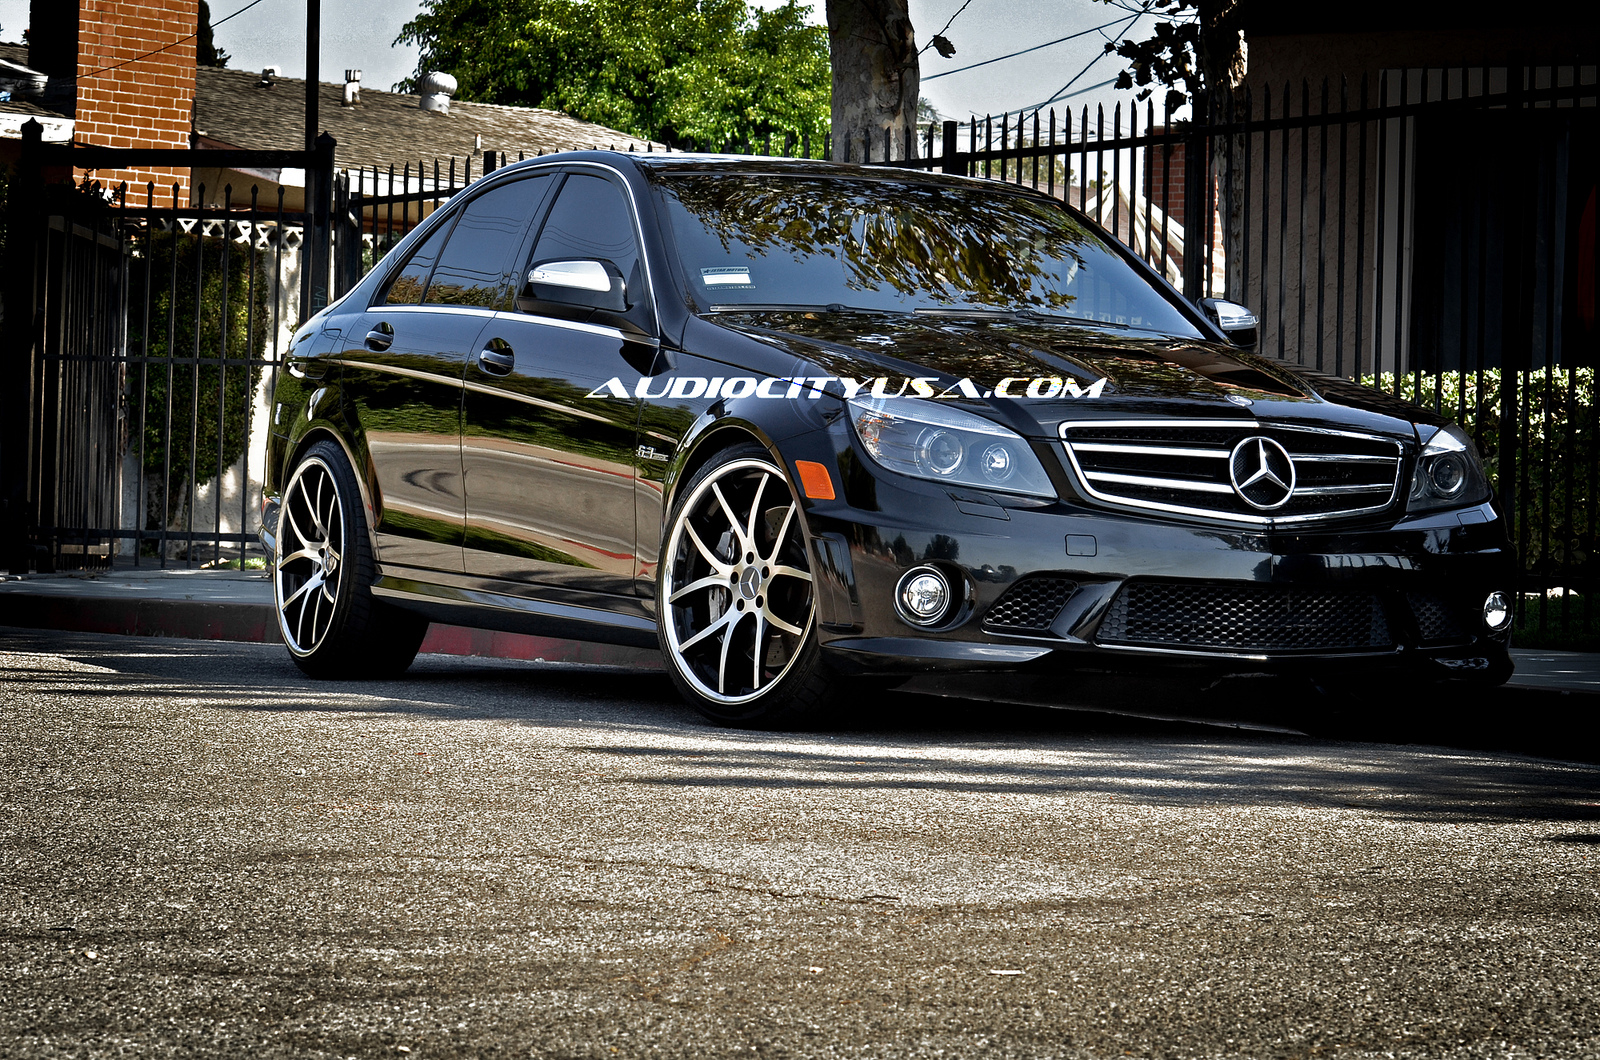 Giovanna Monza 20' Machined Black on Mercedes Benz C63 AMG